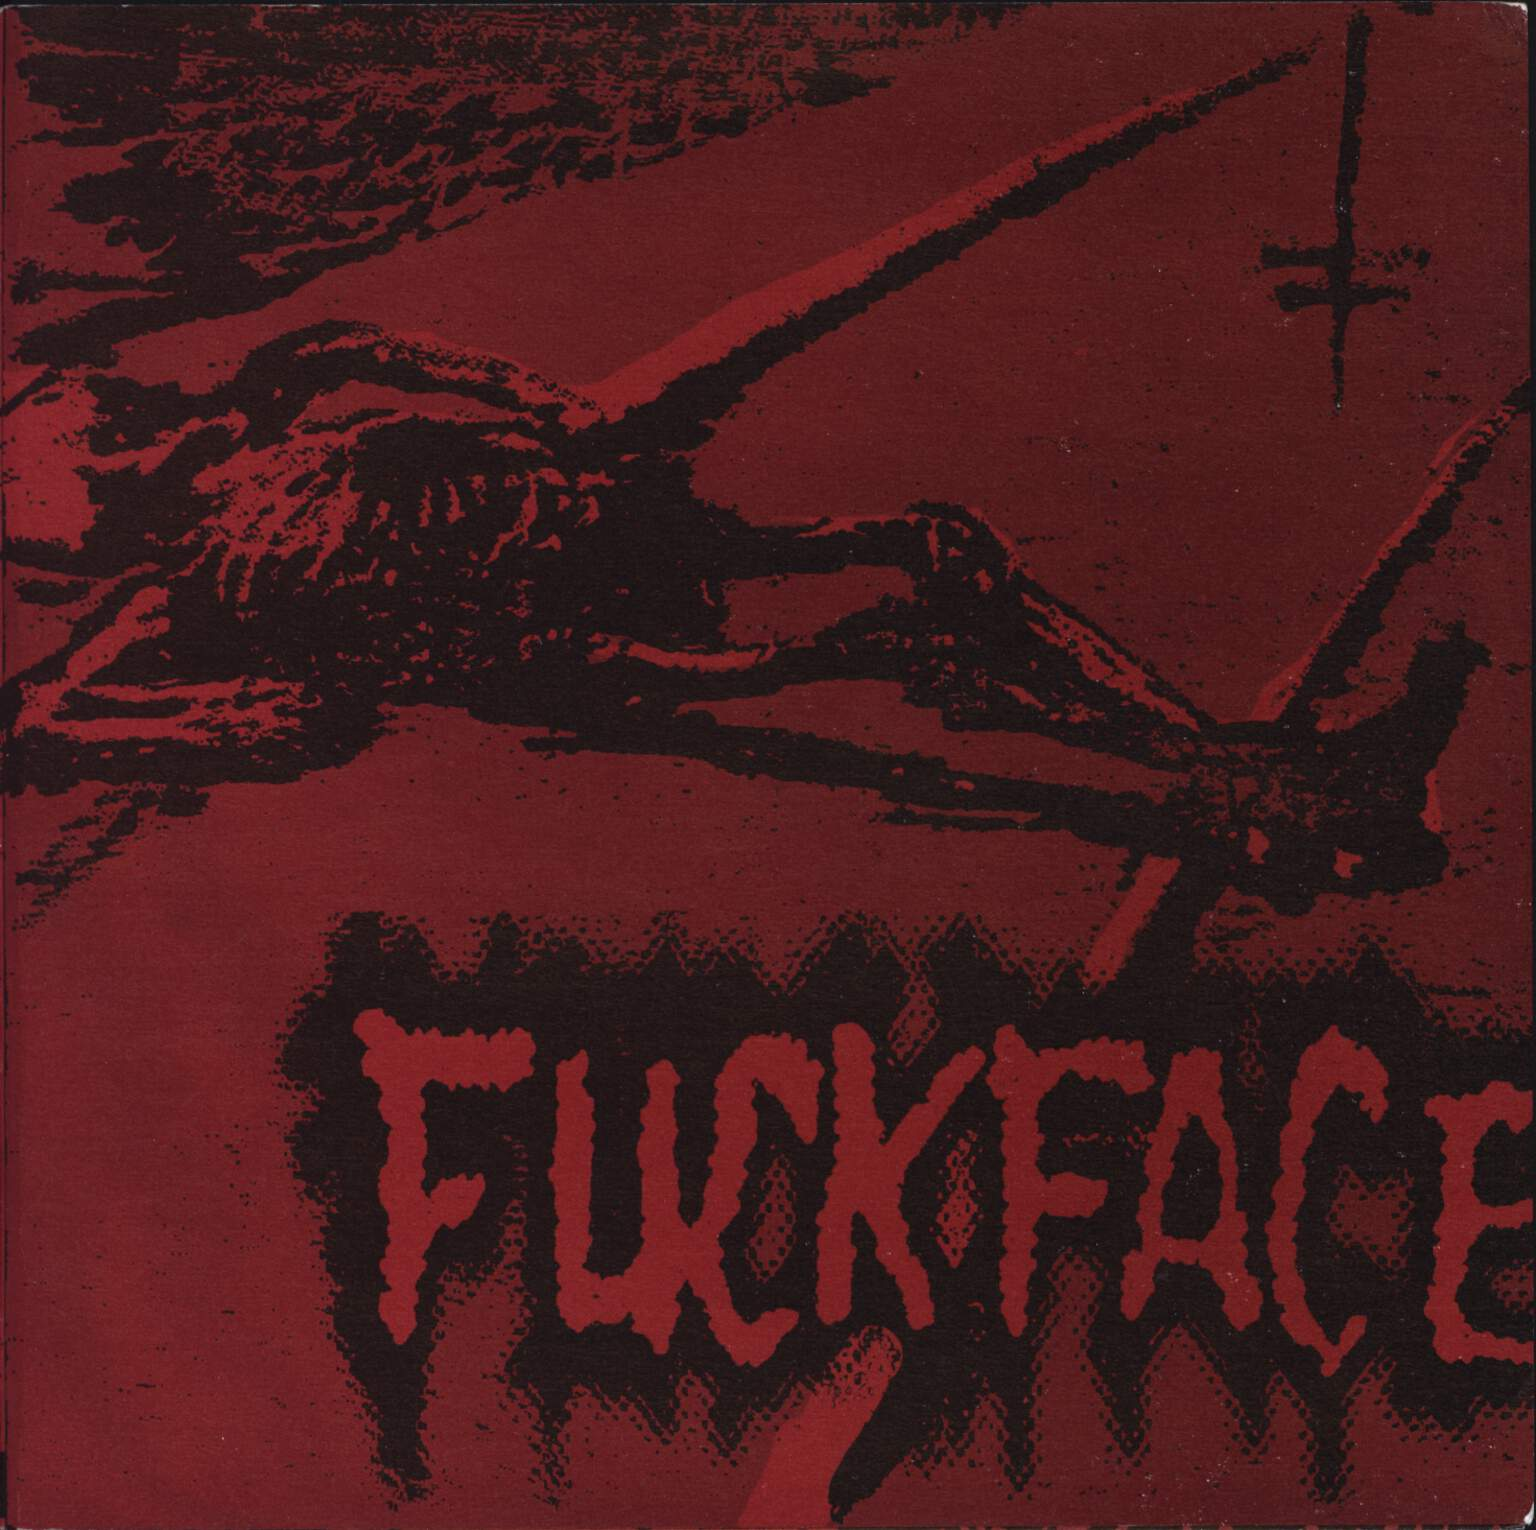 "Fuckface: Fuckface, 7"" Single (Vinyl)"